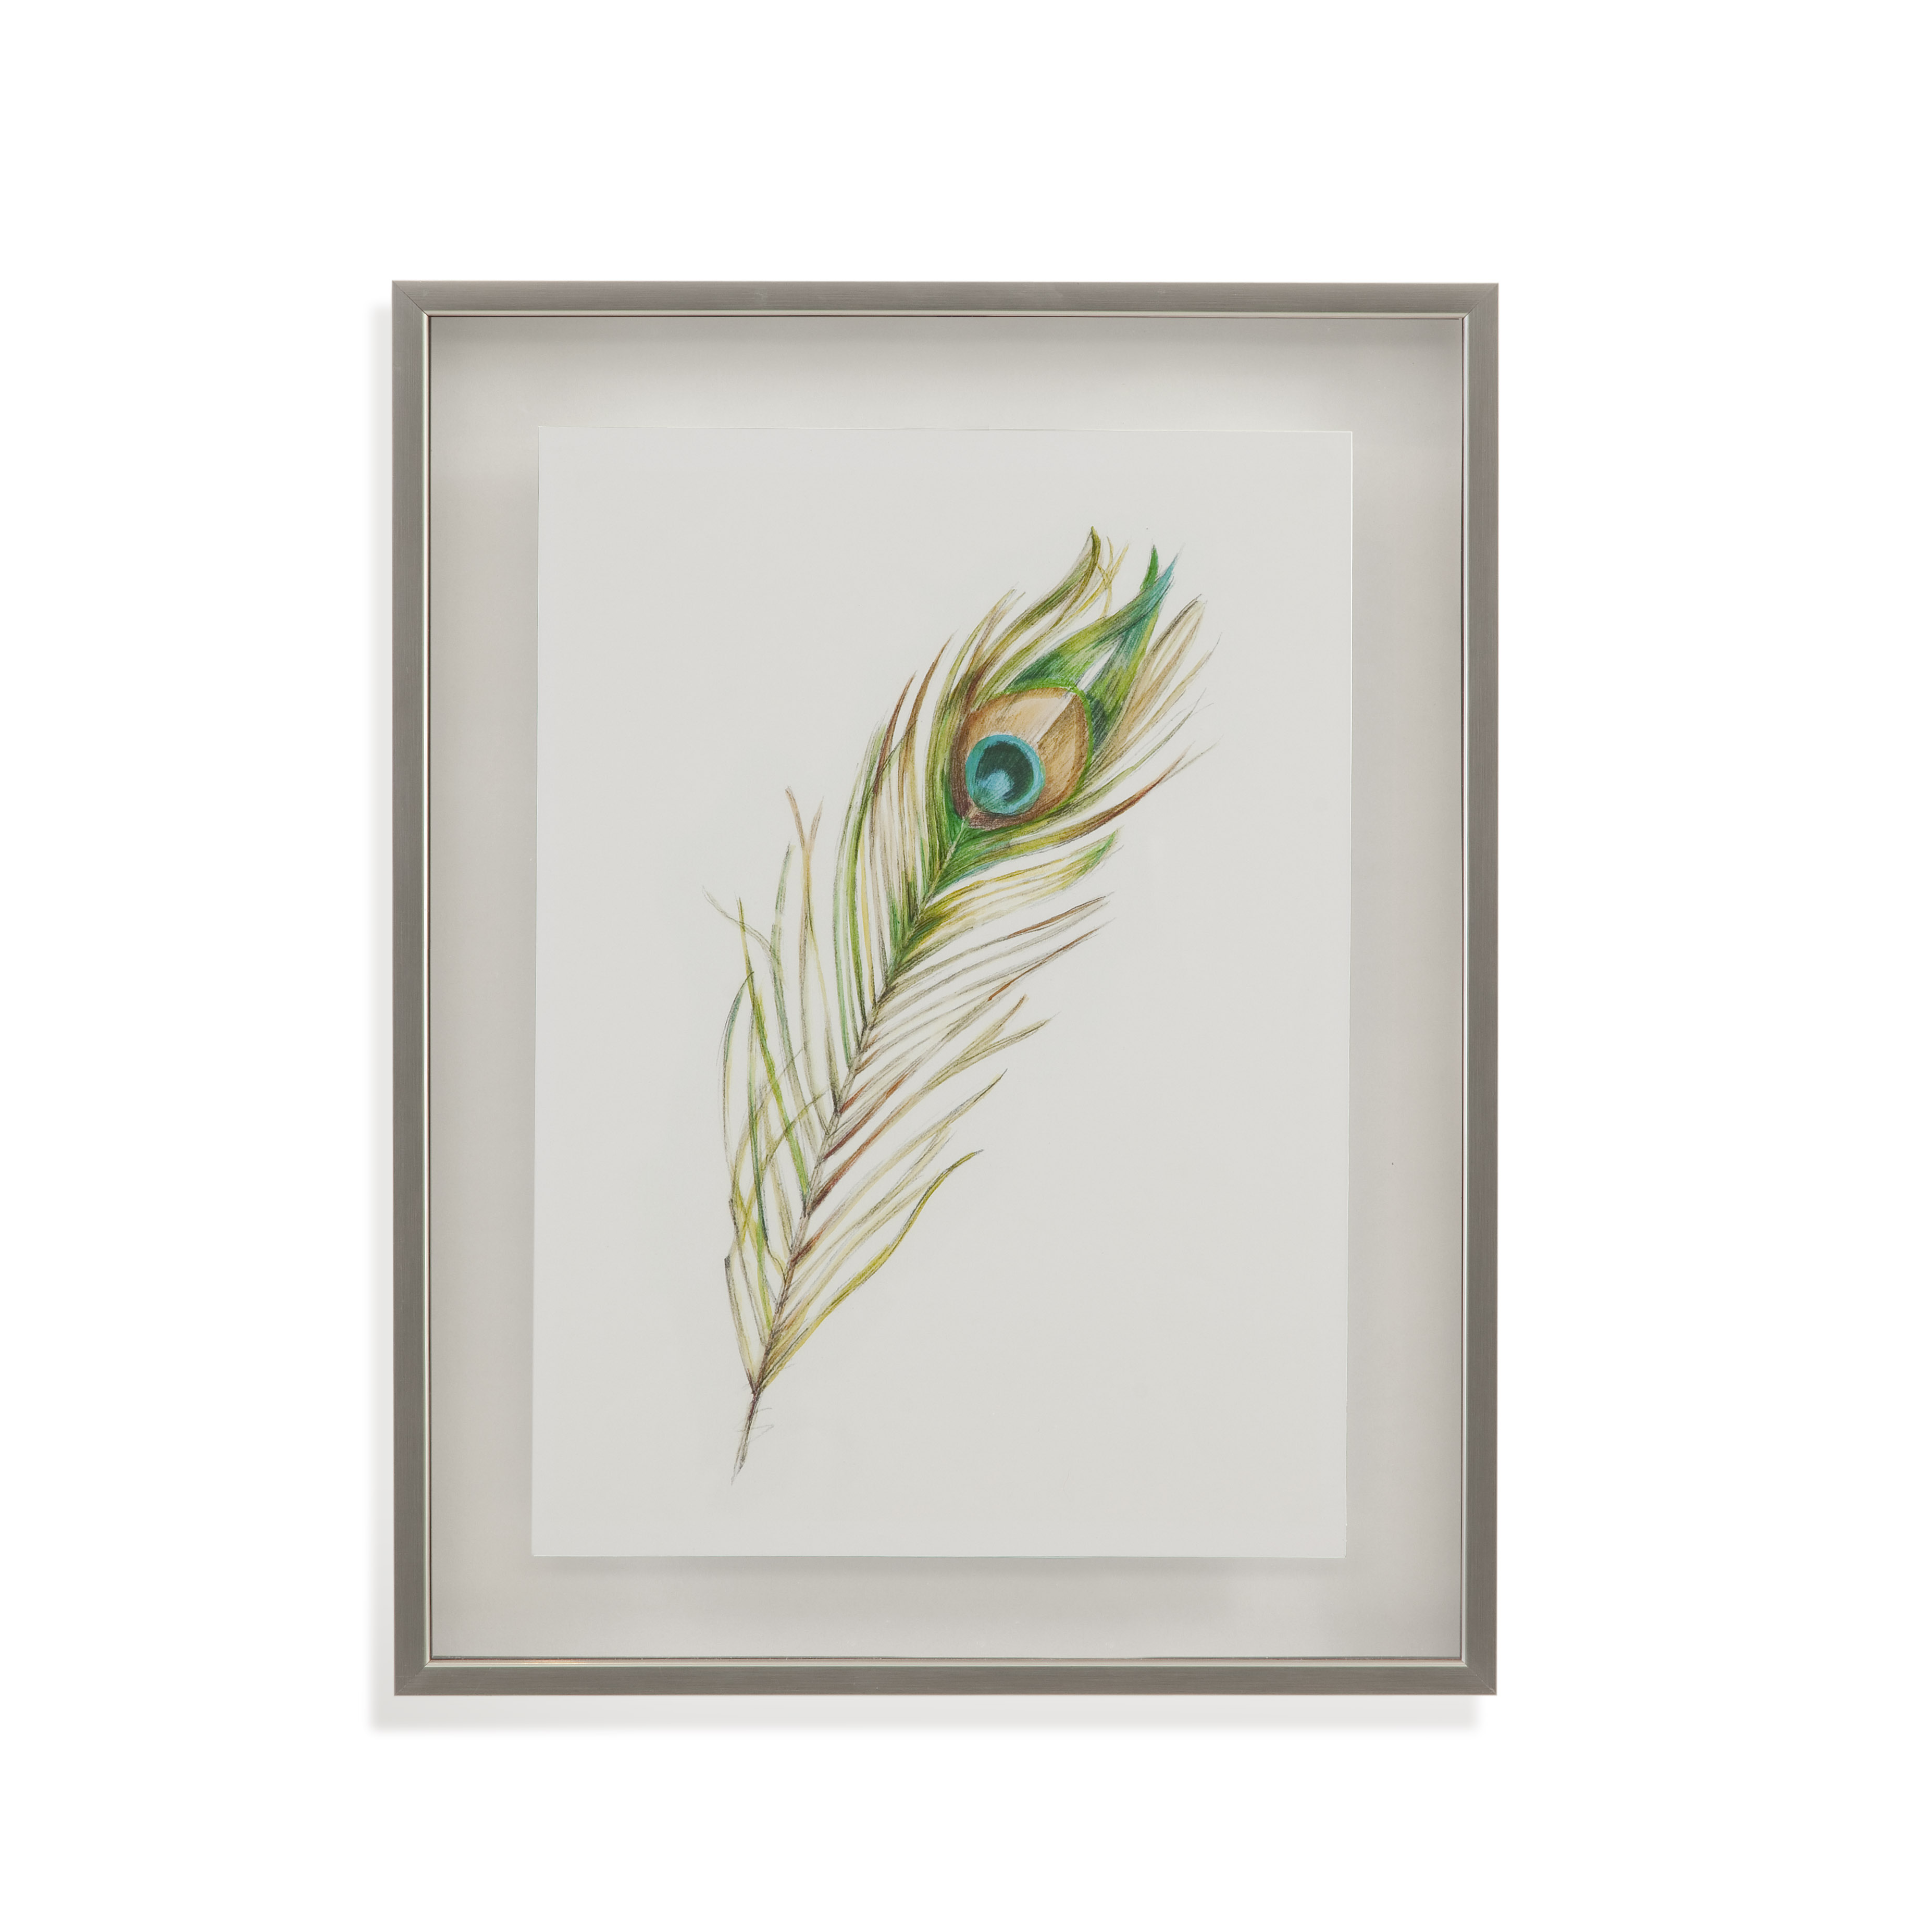 Home Accents Watercolor Peacock Feather II by Bassett Mirror at Alison Craig Home Furnishings